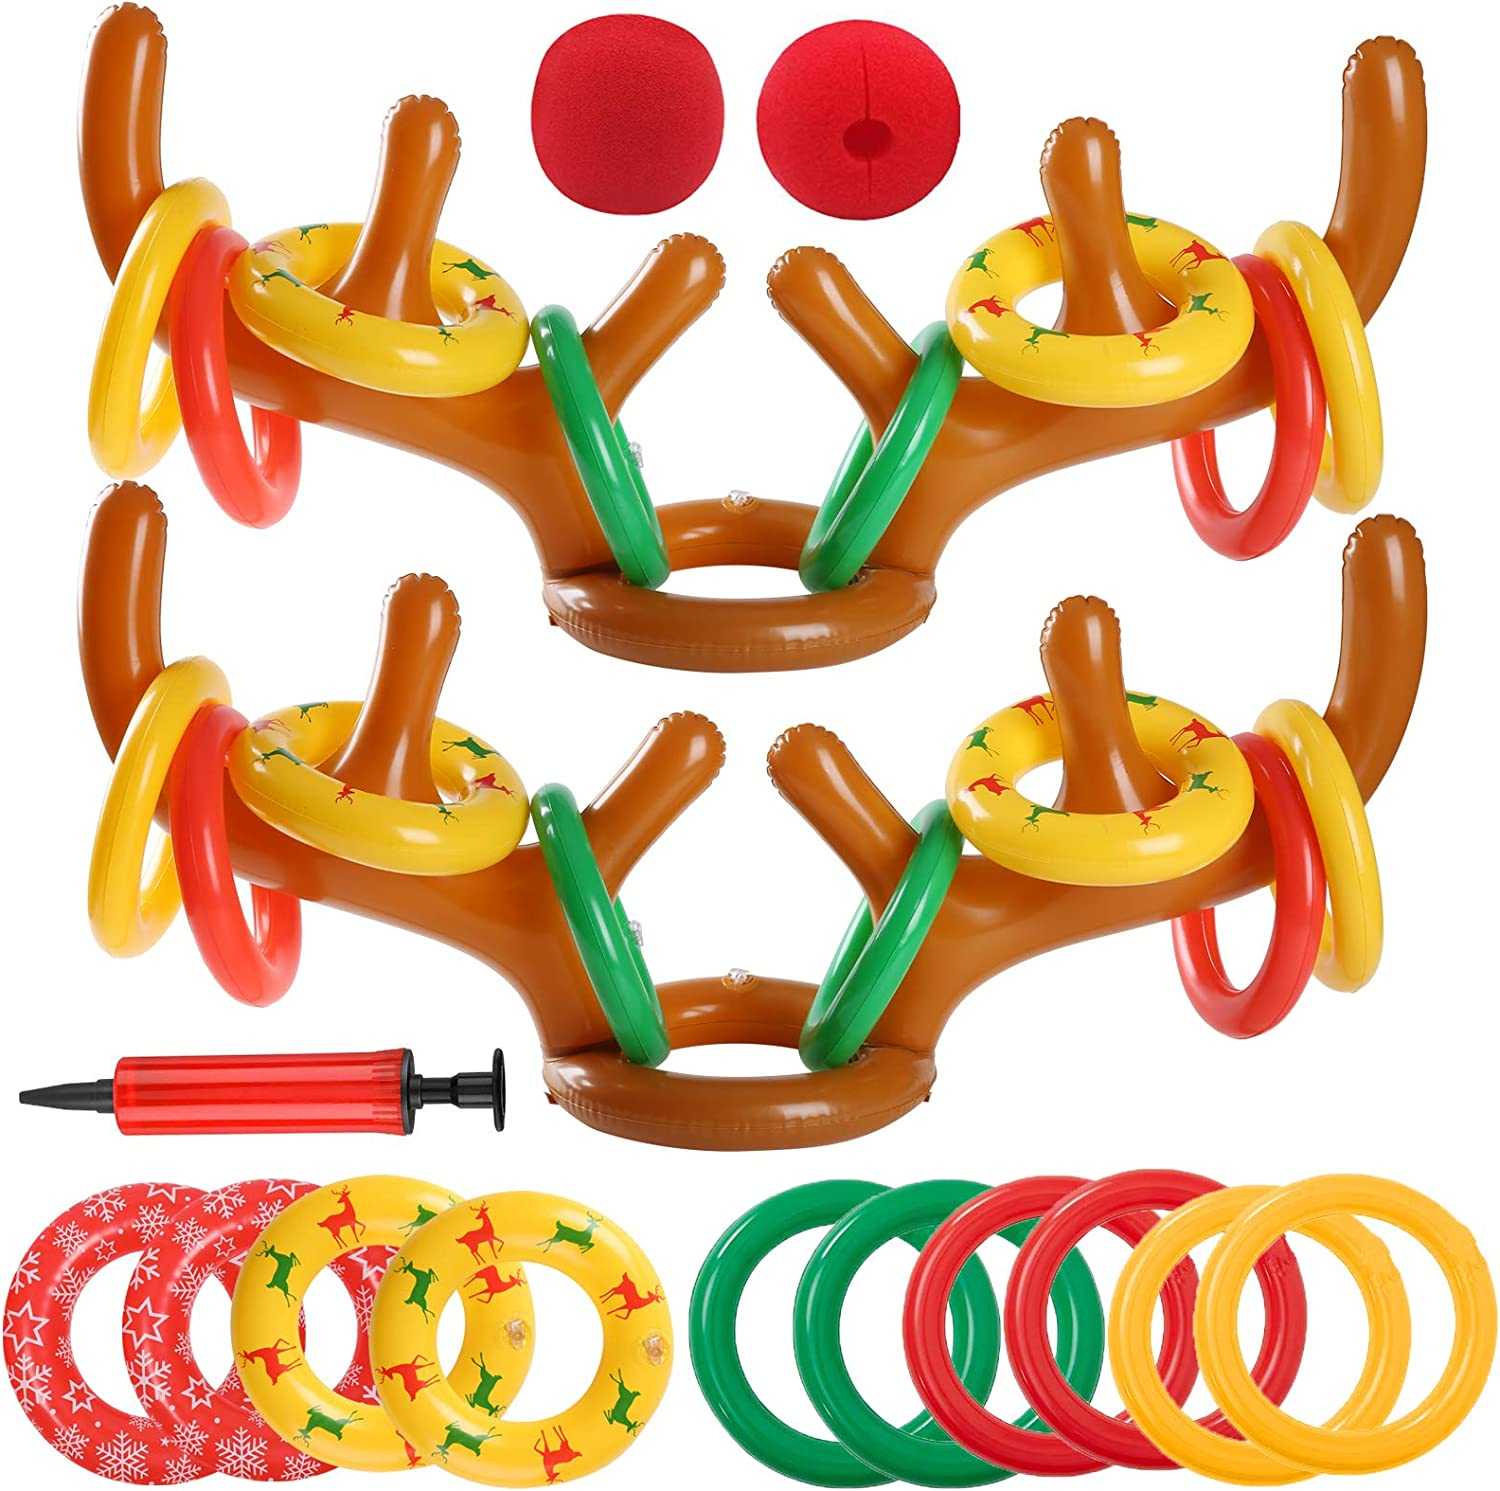 Uniqhia 2 Sets Inflatable Reindeer Ring Challenge the lowest price of Japan Toss Christm Special Campaign Antler Game